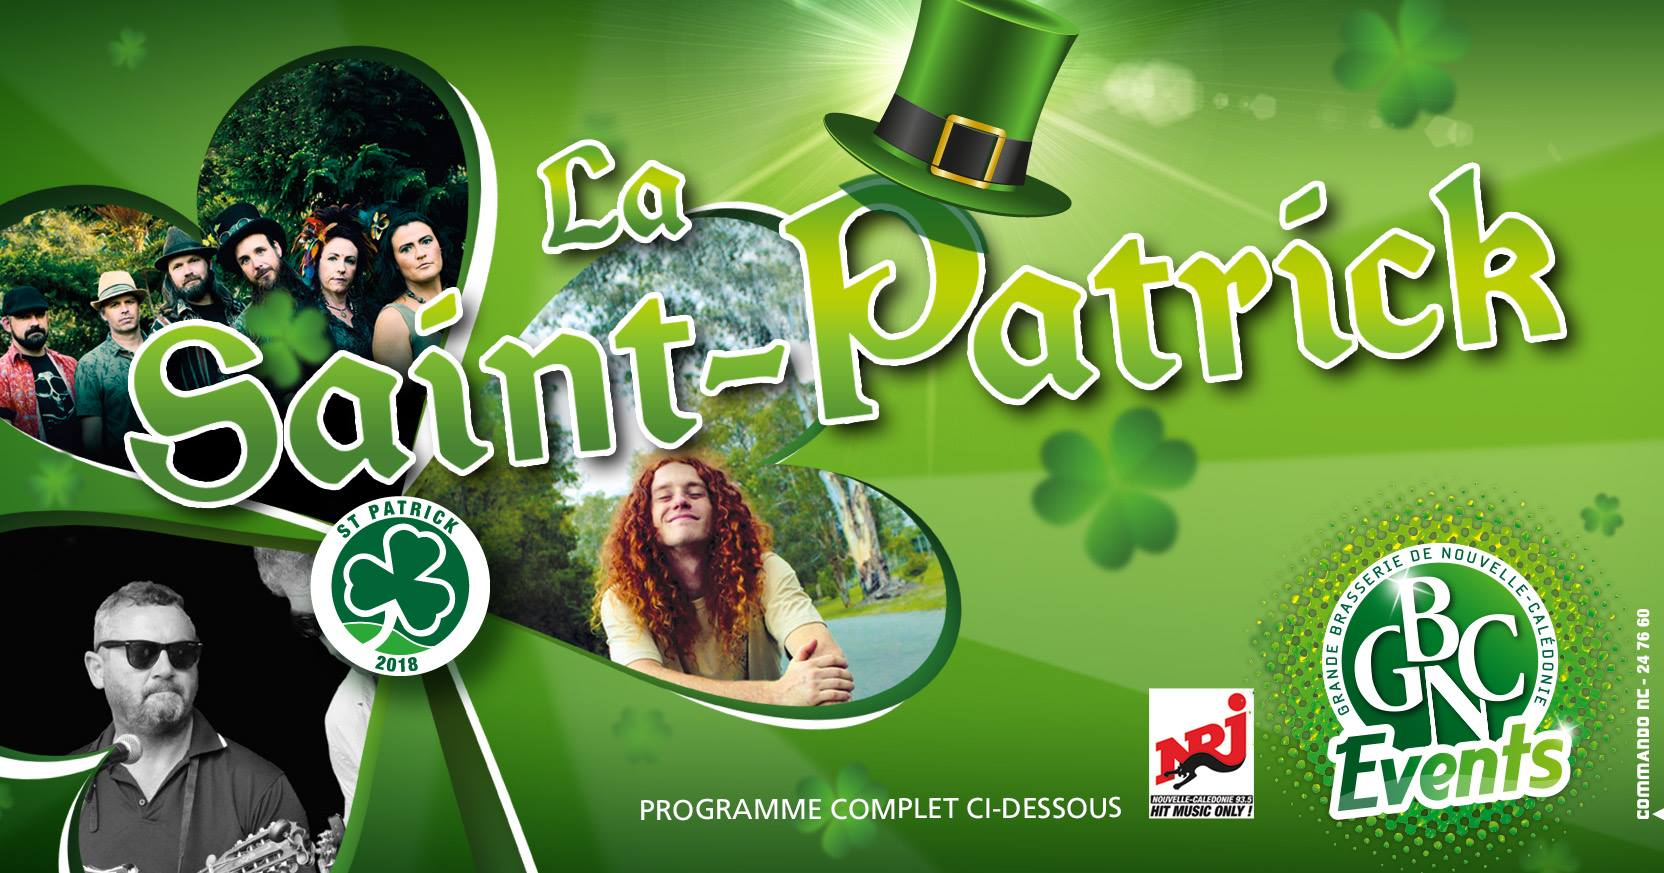 GBNC Events - La Saint Patrick 2018